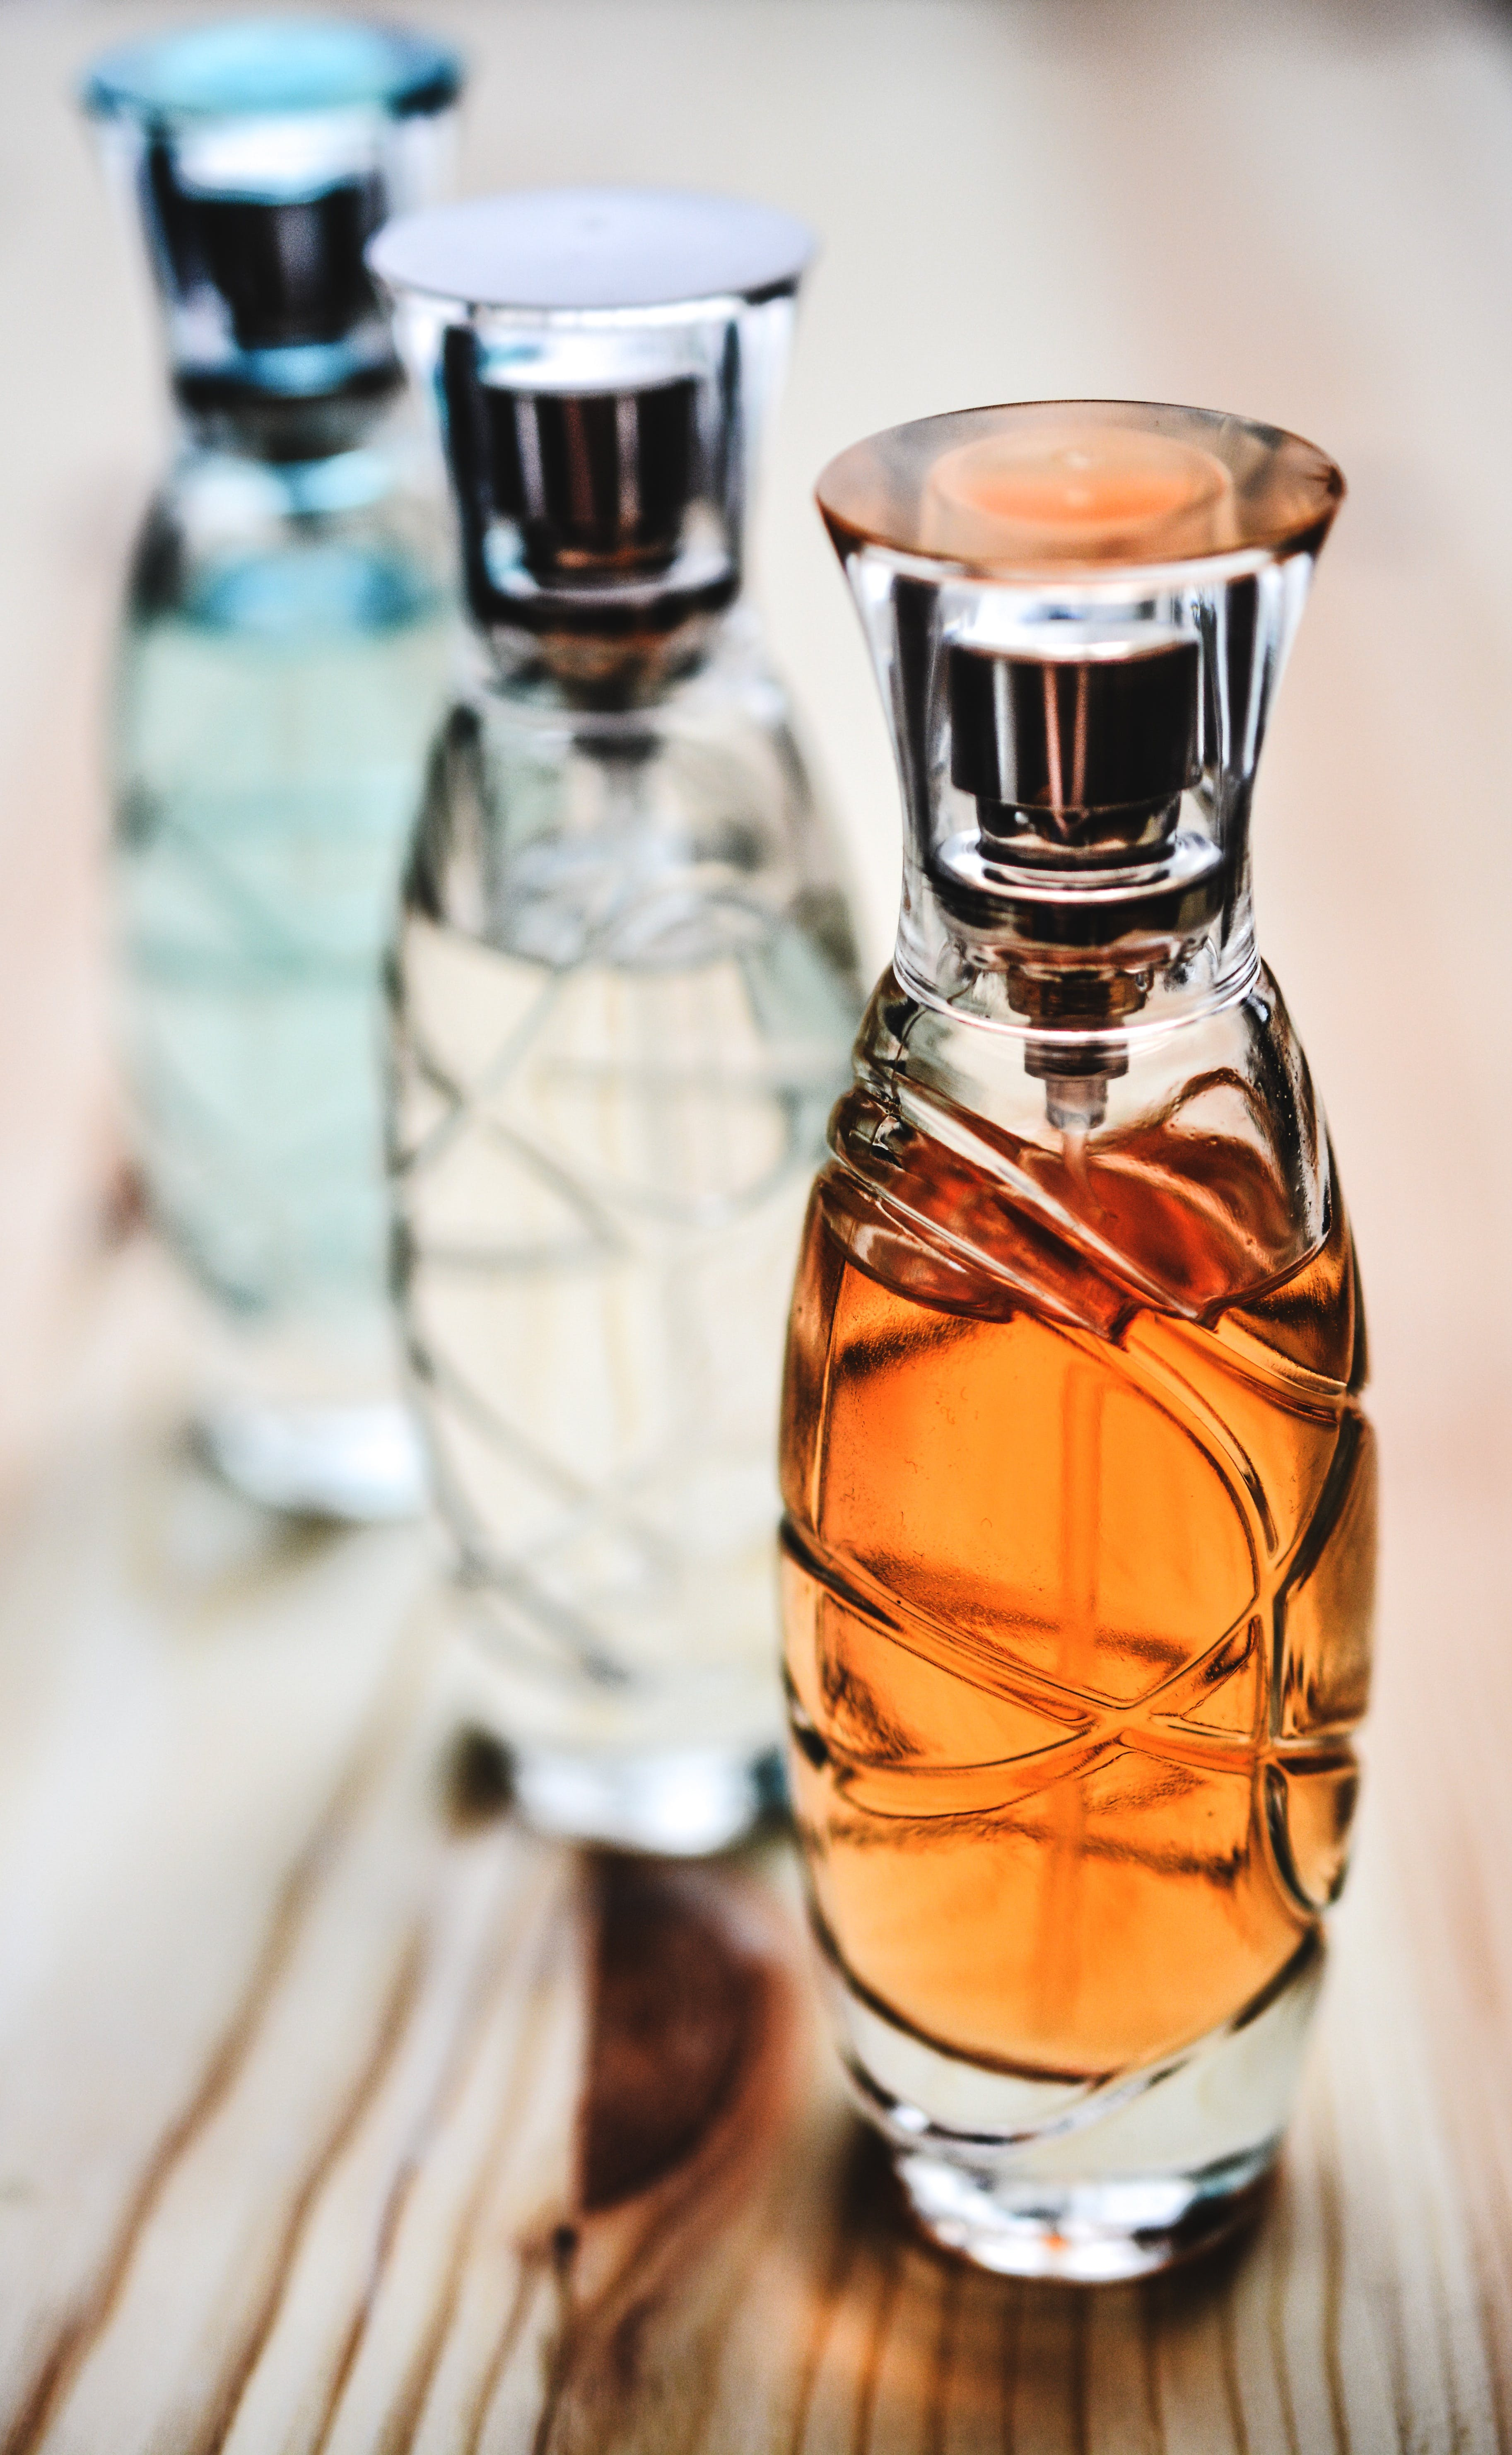 Free stock photo of bottles, fragrance, container, perfume